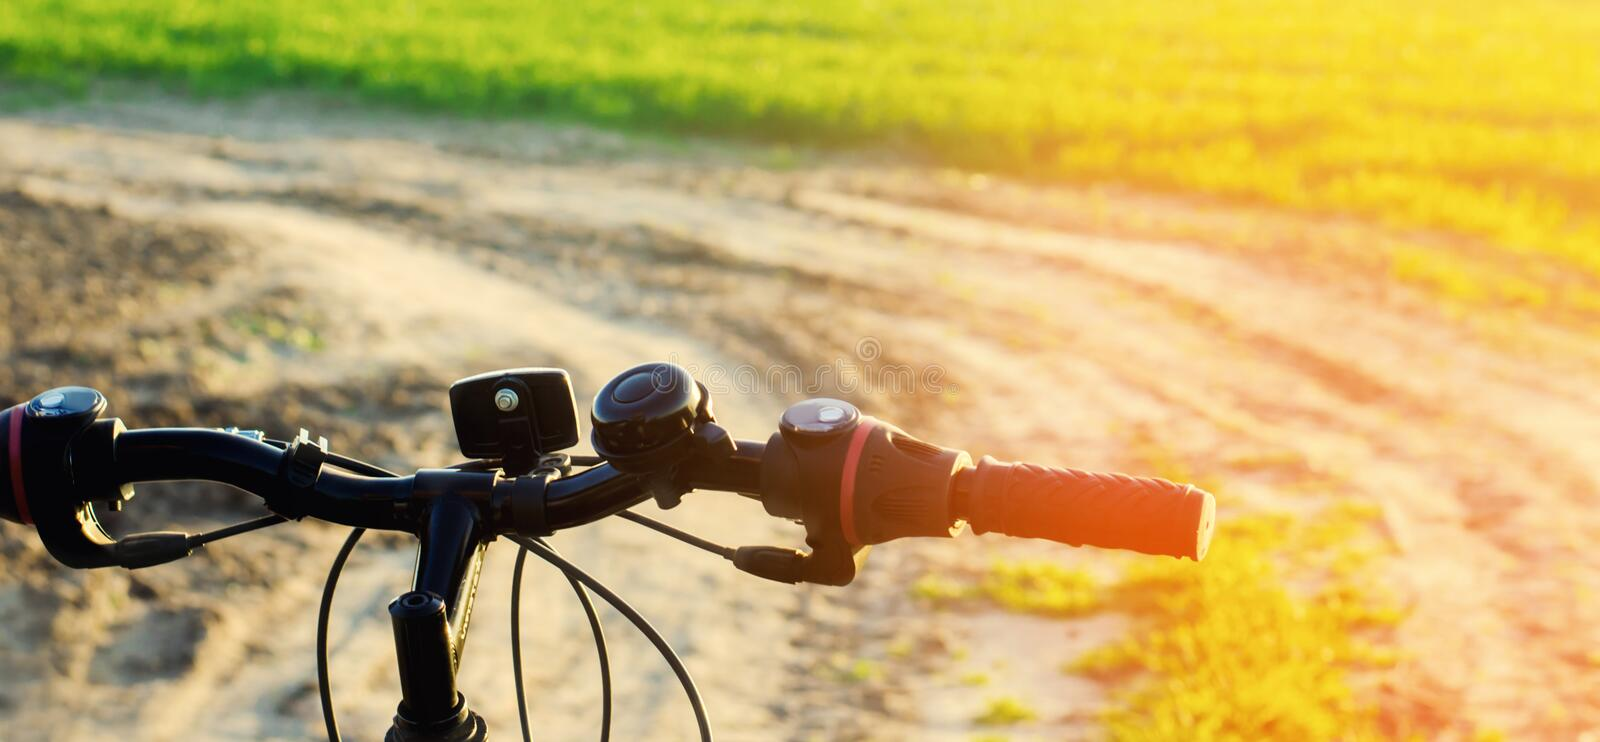 Bicycle on nature close up. Concept of travel, healthy lifestyle. Country walk. Bicycle frame.  stock photography